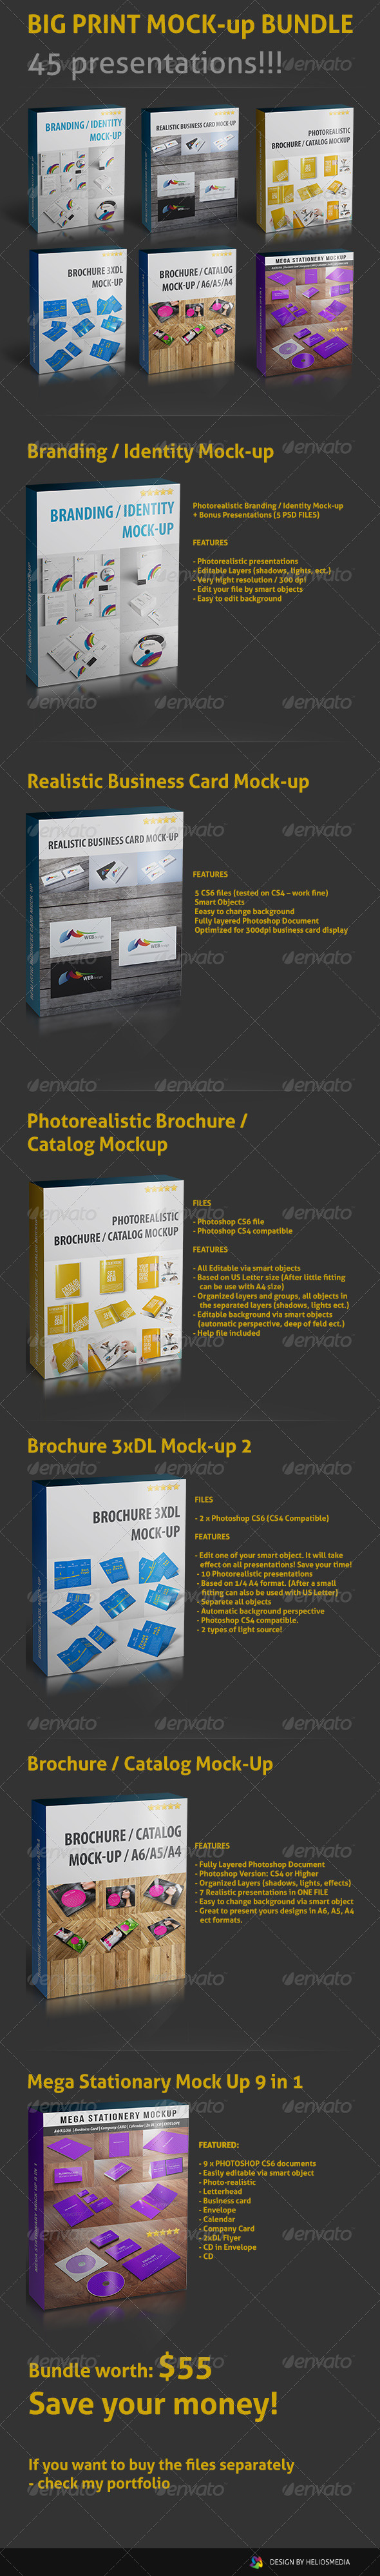 Big Print Mock-up Bundle - Print Product Mock-Ups